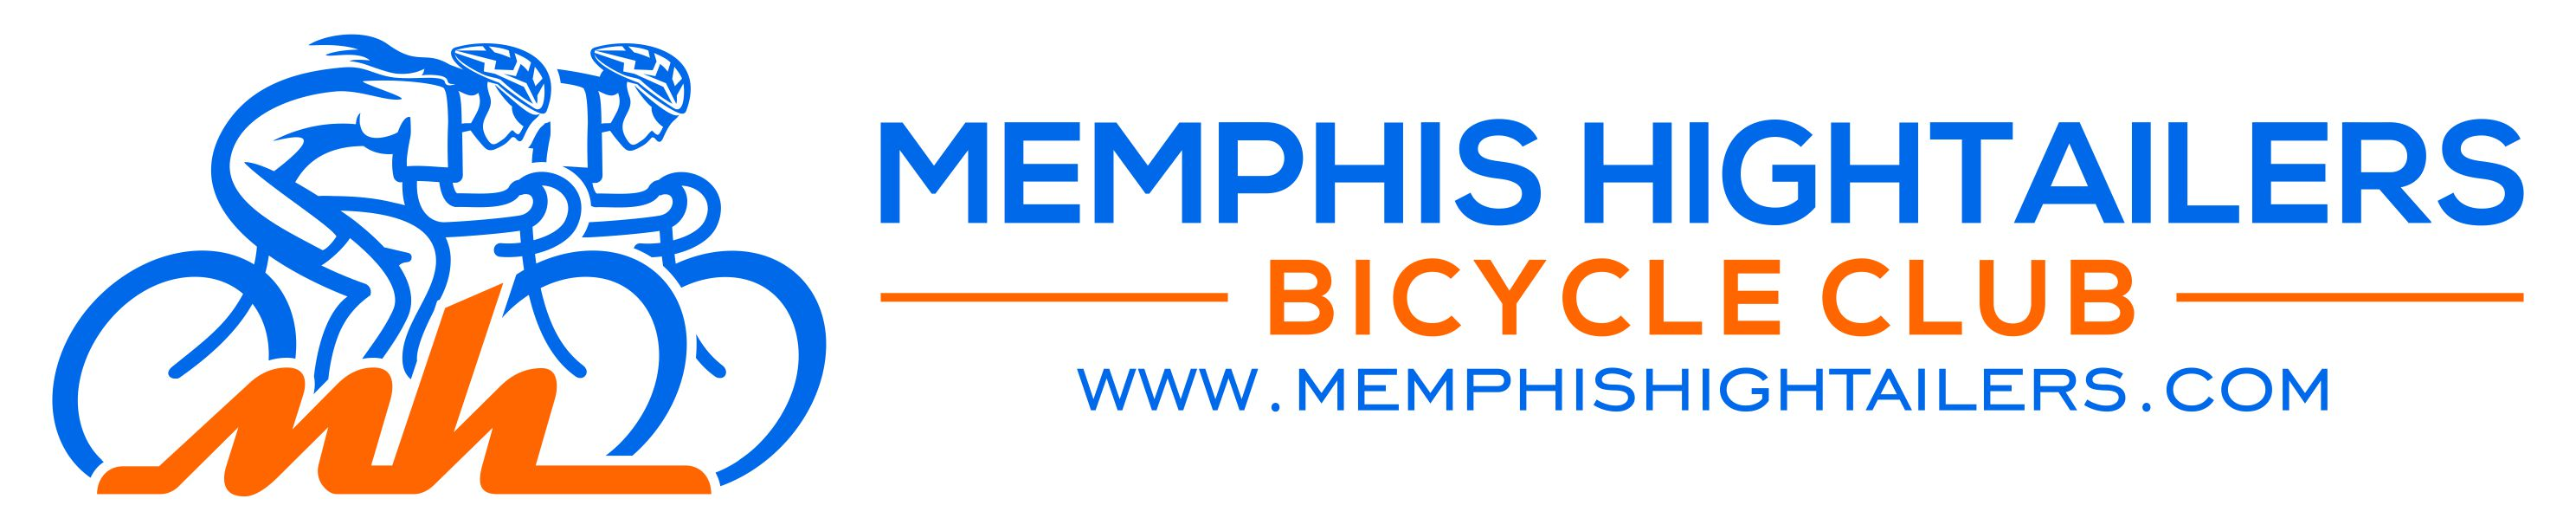 Memphis Hightailers Online Store